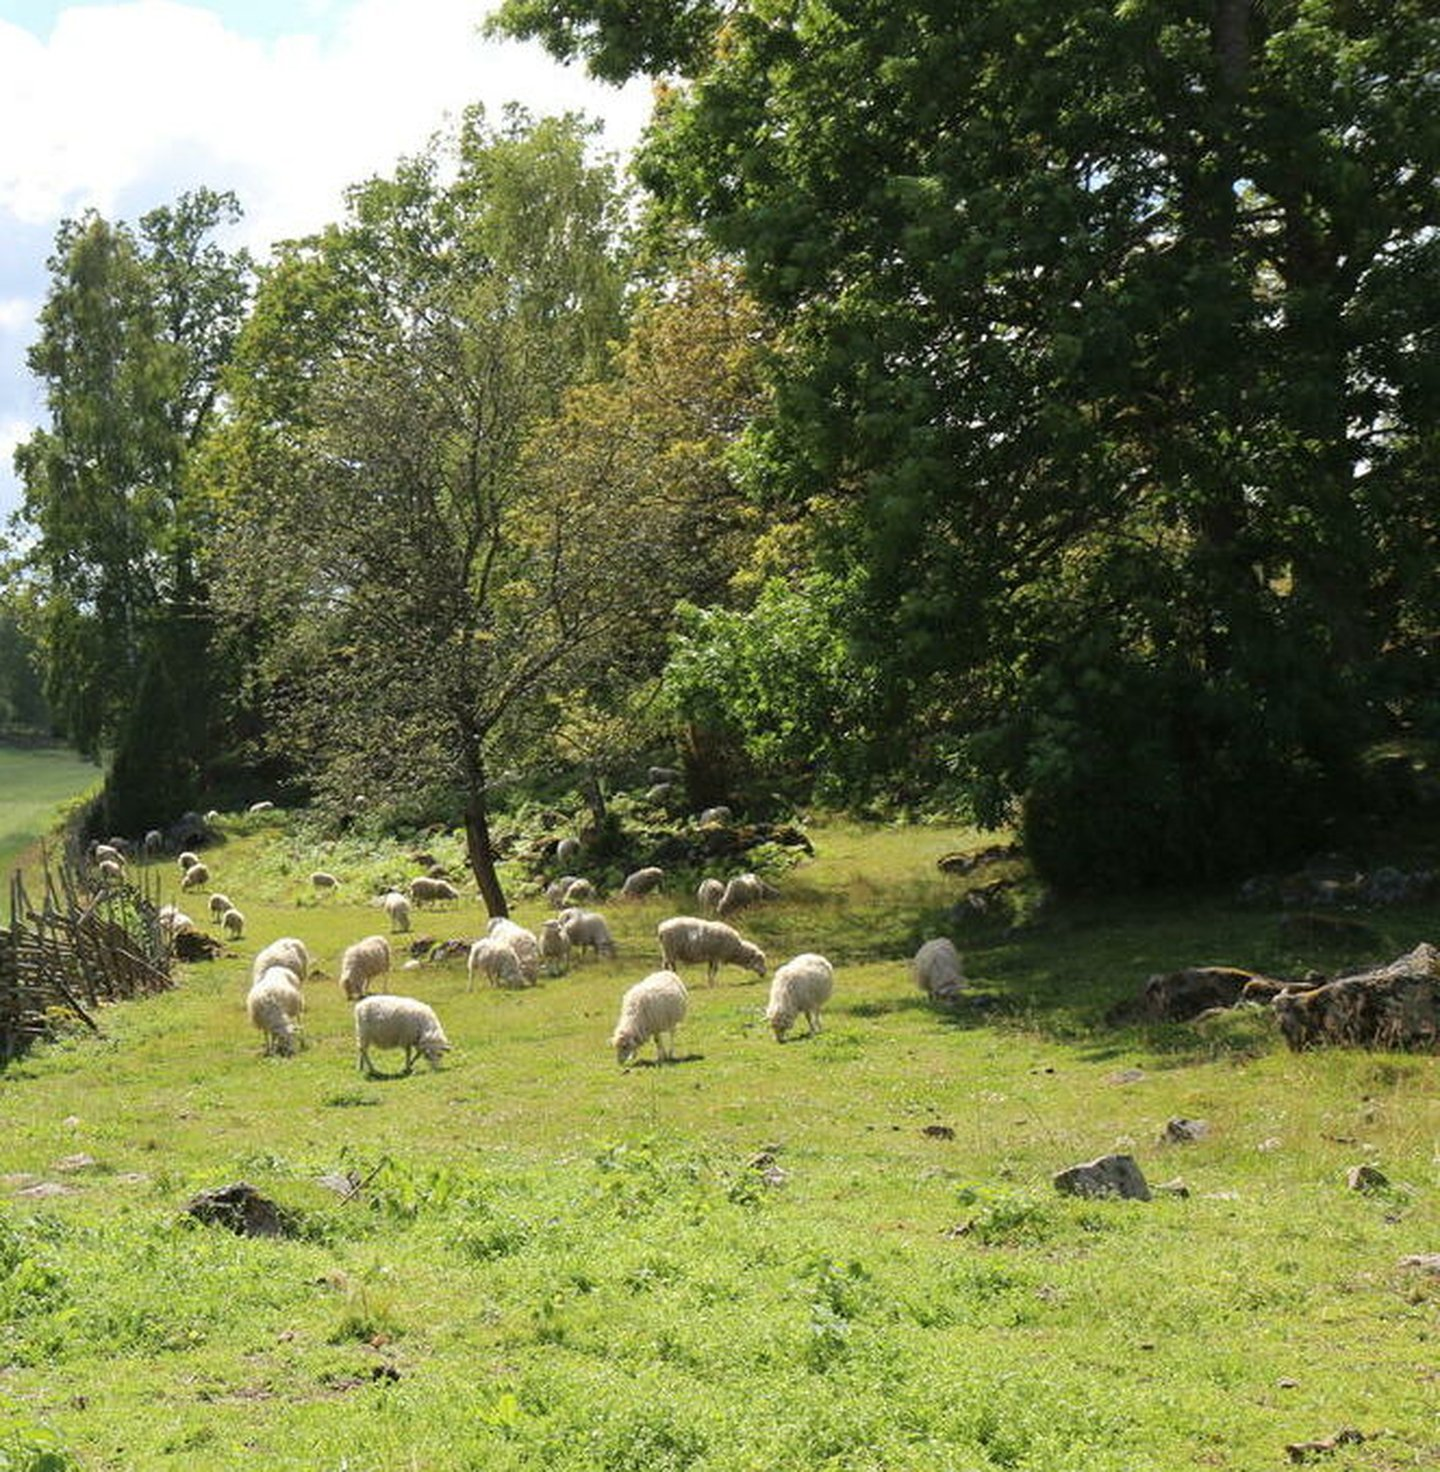 Sheeps (Ovis aries) grazing in a field in Sweden, with old traditional fences called